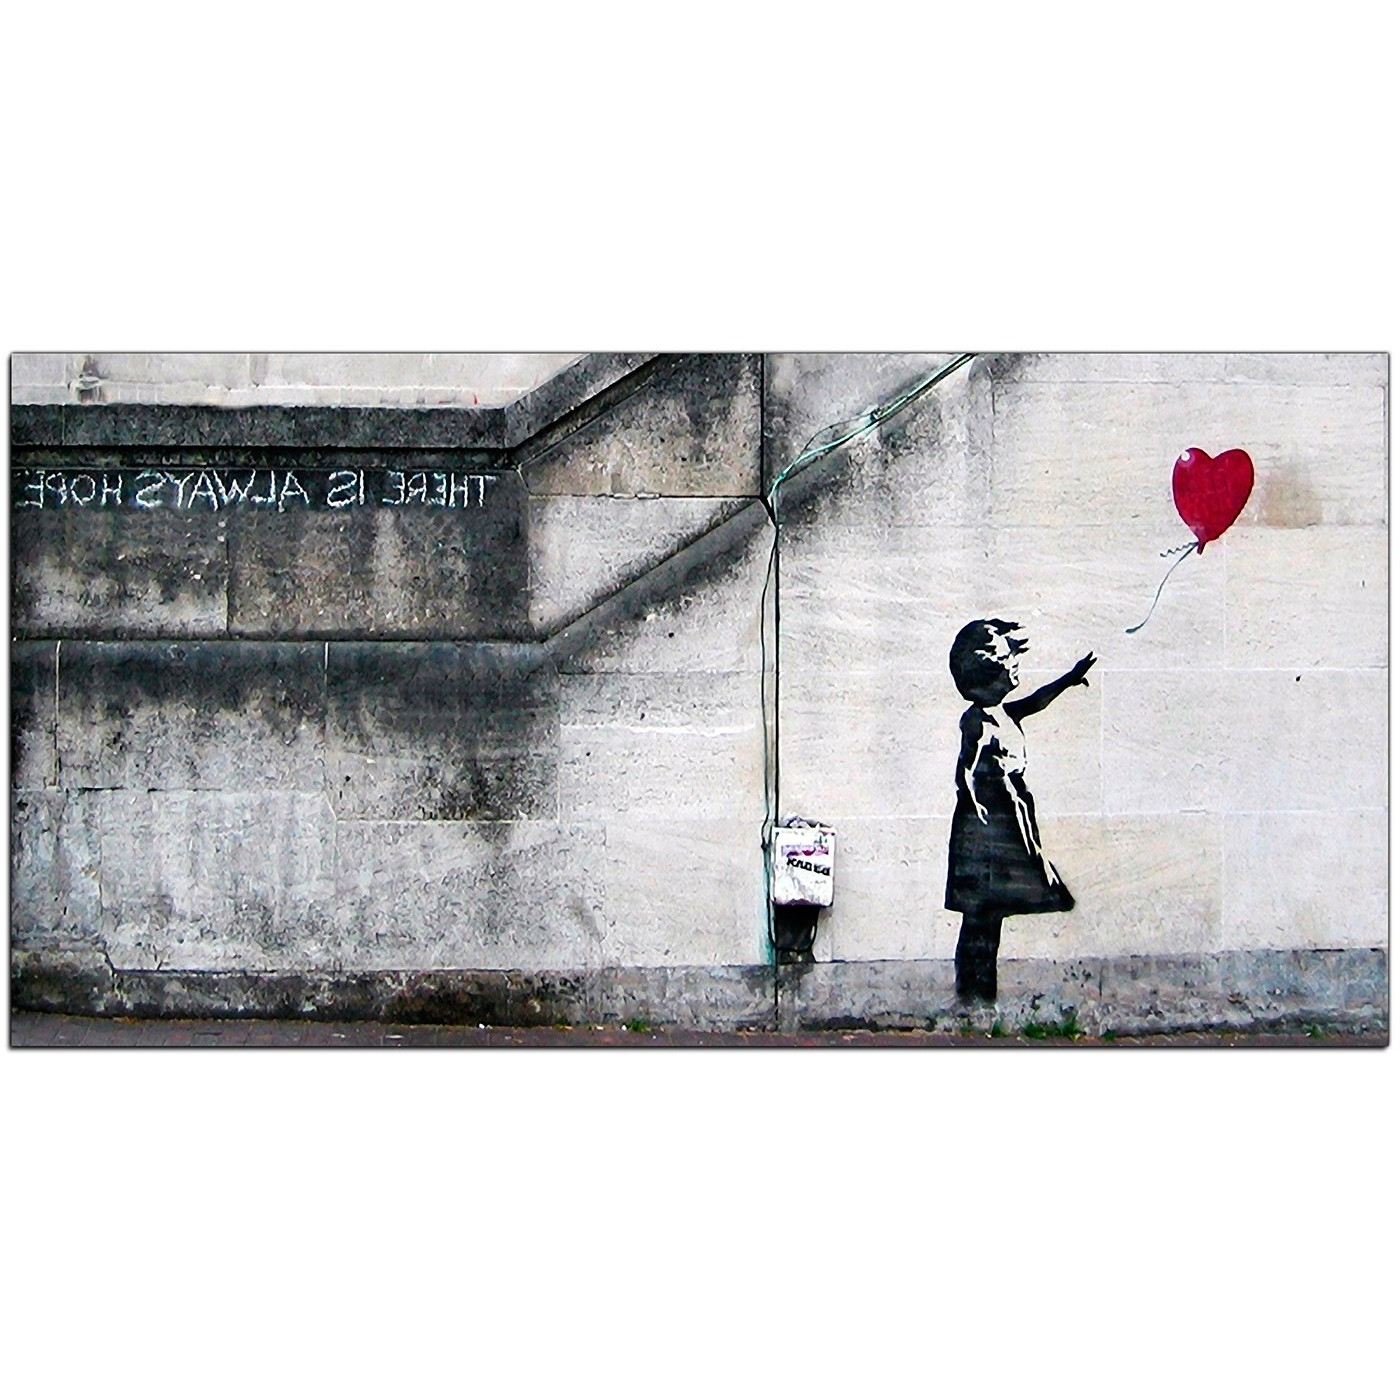 Banksy Canvas Wall Art For Fashionable Banksy Large Canvas Prints – Girl With The Red Balloon For Dining Room (View 8 of 15)